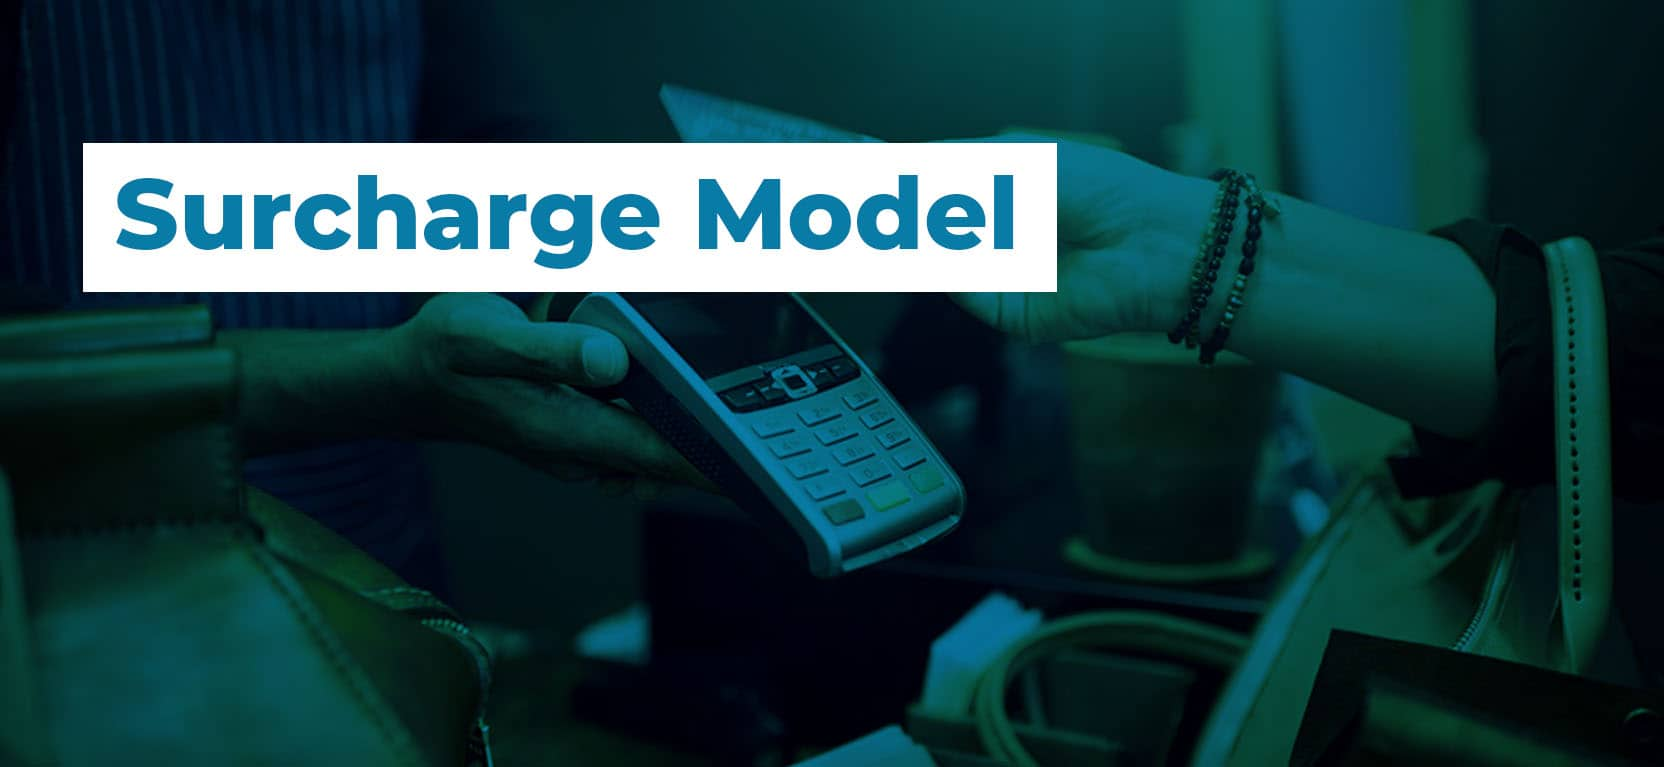 63Surcharge Model